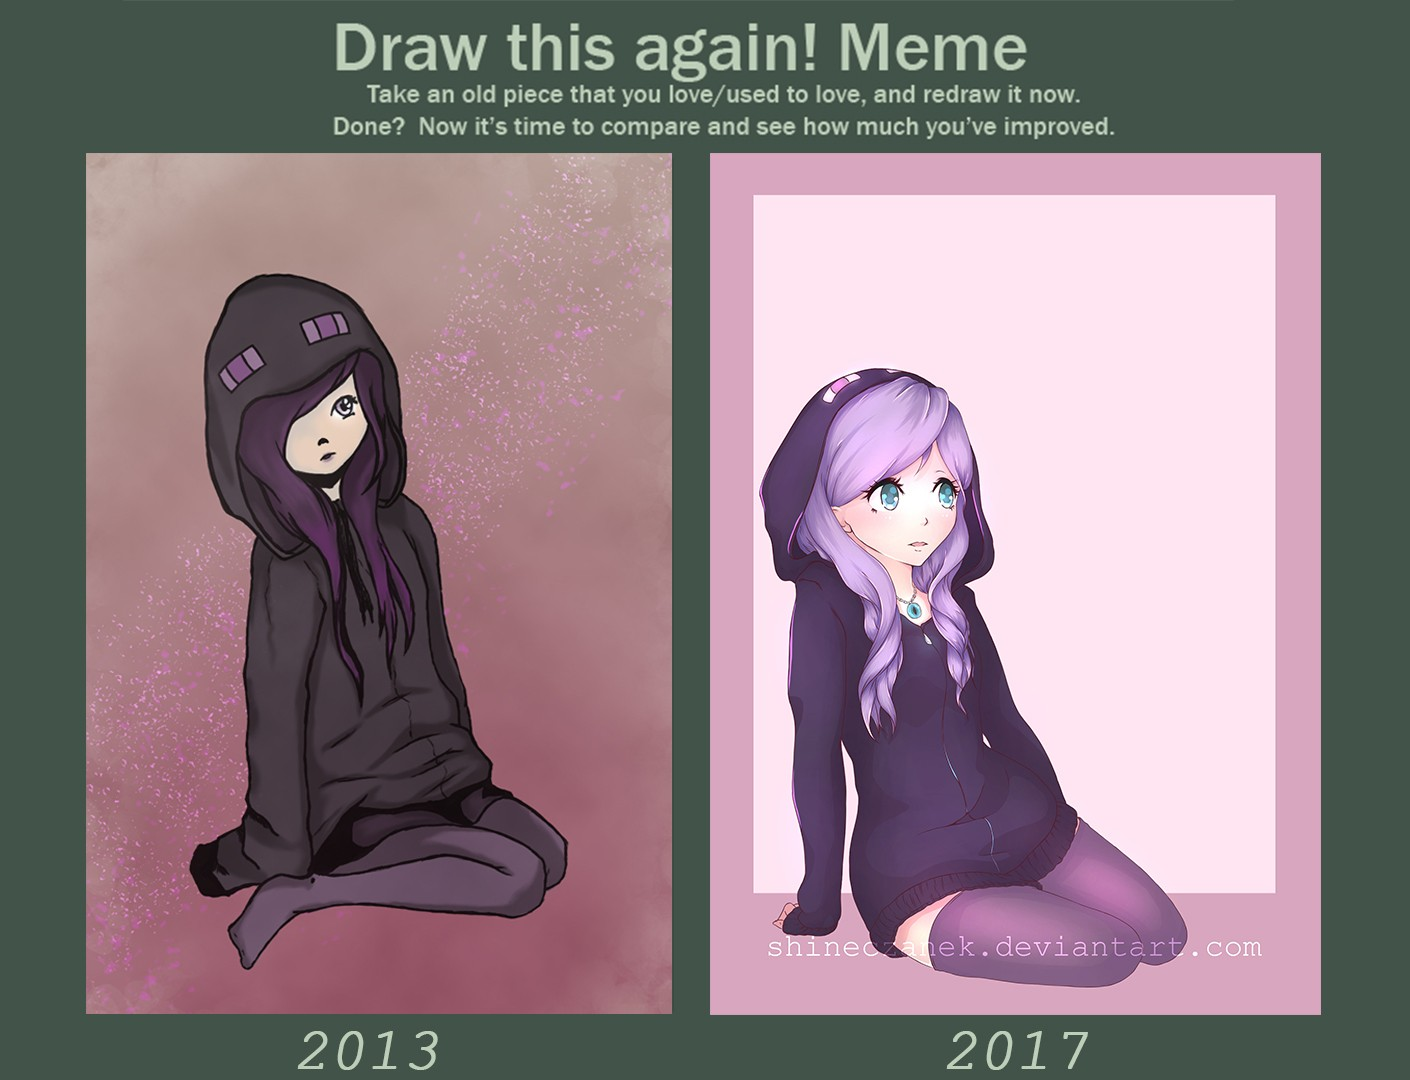 Draw This again Meme - Ender girl 2013 - 2017